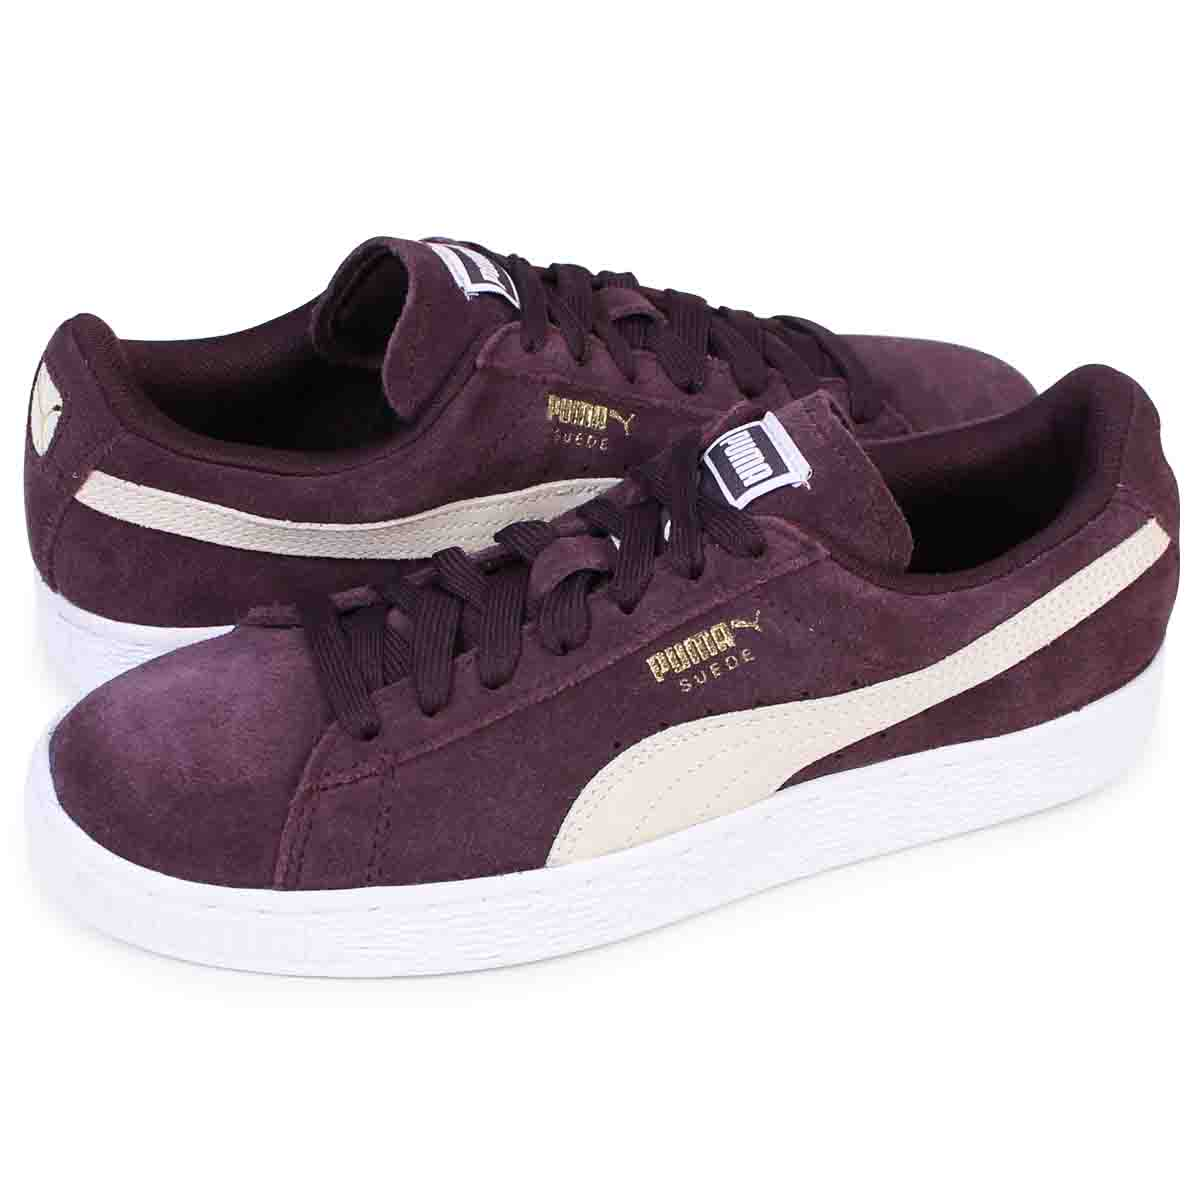 822123cdfdec62 PUMA SUEDE CLASSIC WMNS Puma suede classical music Lady's sneakers  355,462-40 men's shoes wine ...